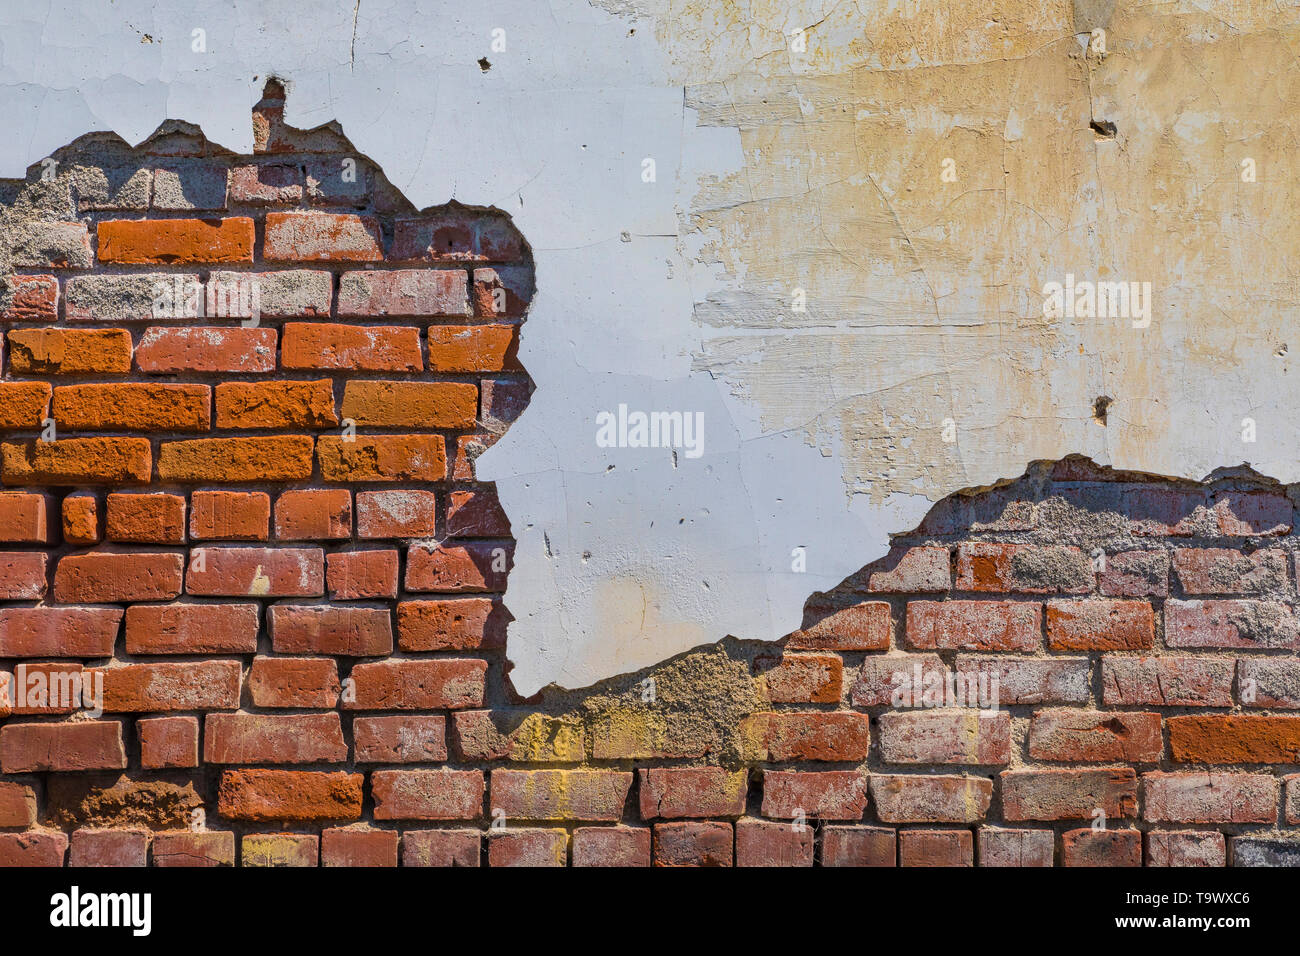 Wall of deteriorating building in Sprague, Washington State, USA - Stock Image